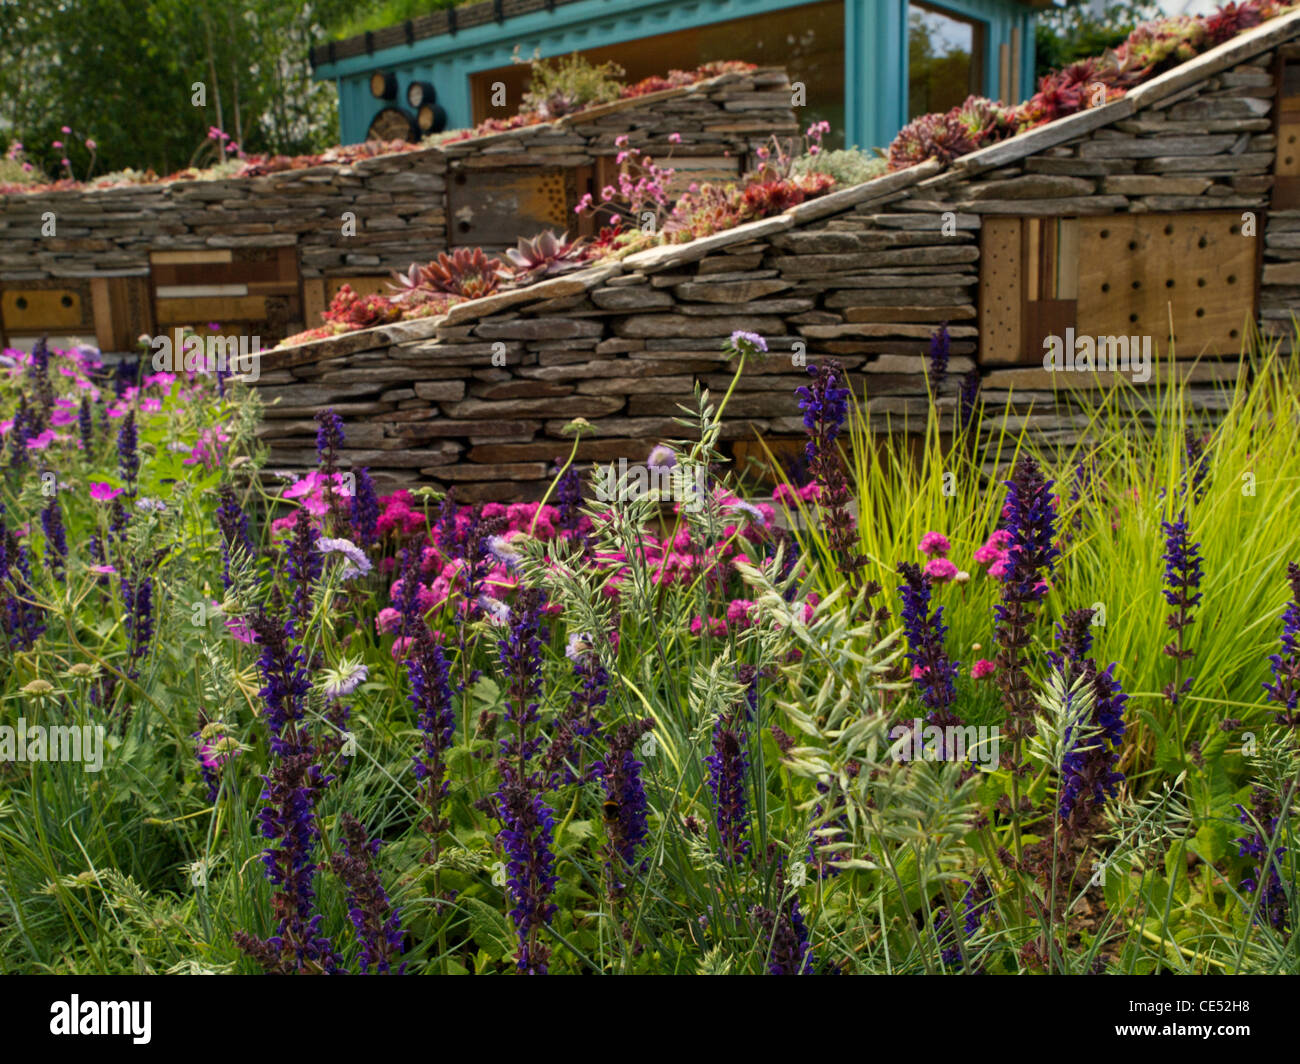 New Wild Garden - natural planting and insect friendly features at the front of the show garden - Stock Image